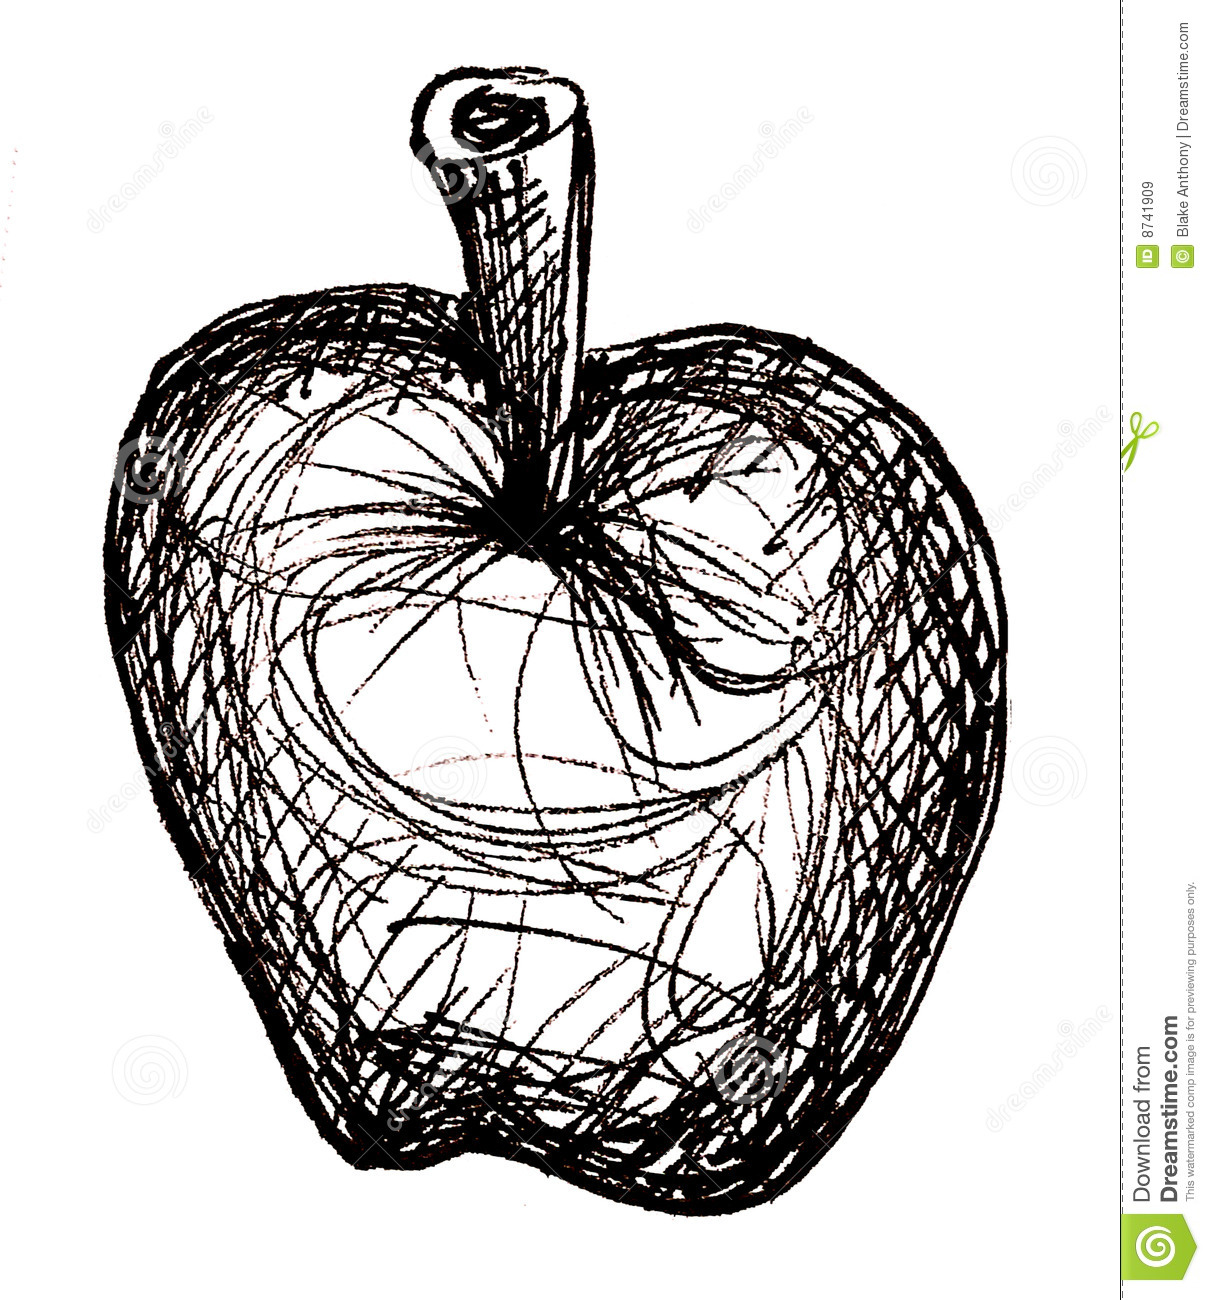 Apple black and white sketch